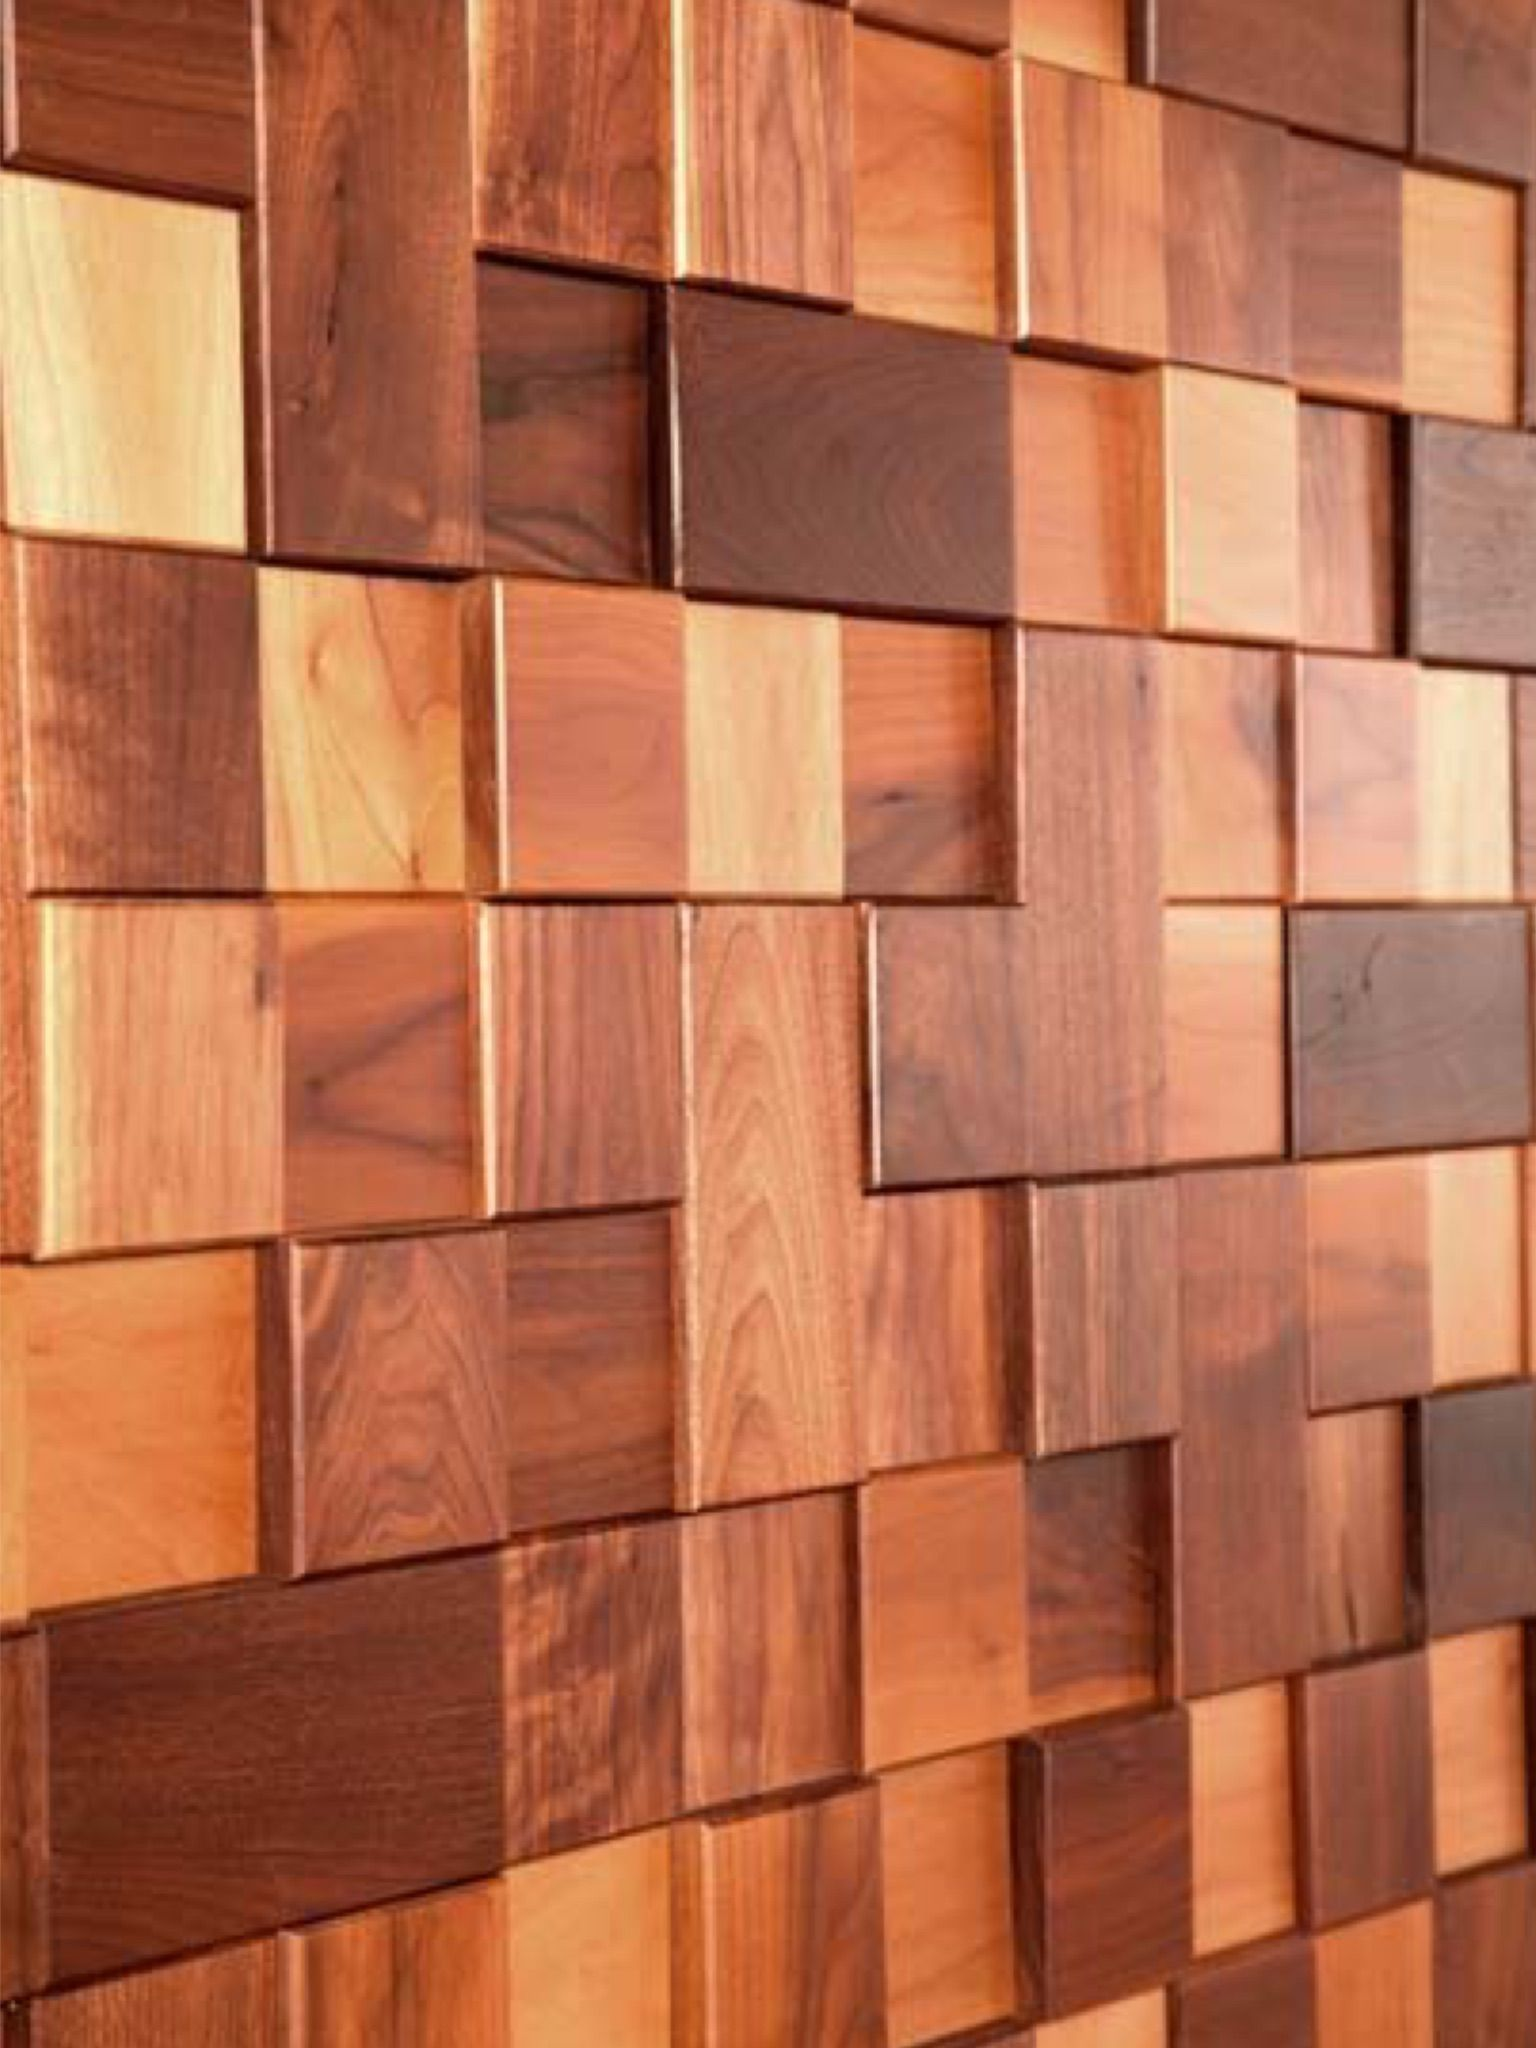 Wood Wall Tiles Pinmoody Style On Wall  Pinterest  Woods Walls And Wood Walls